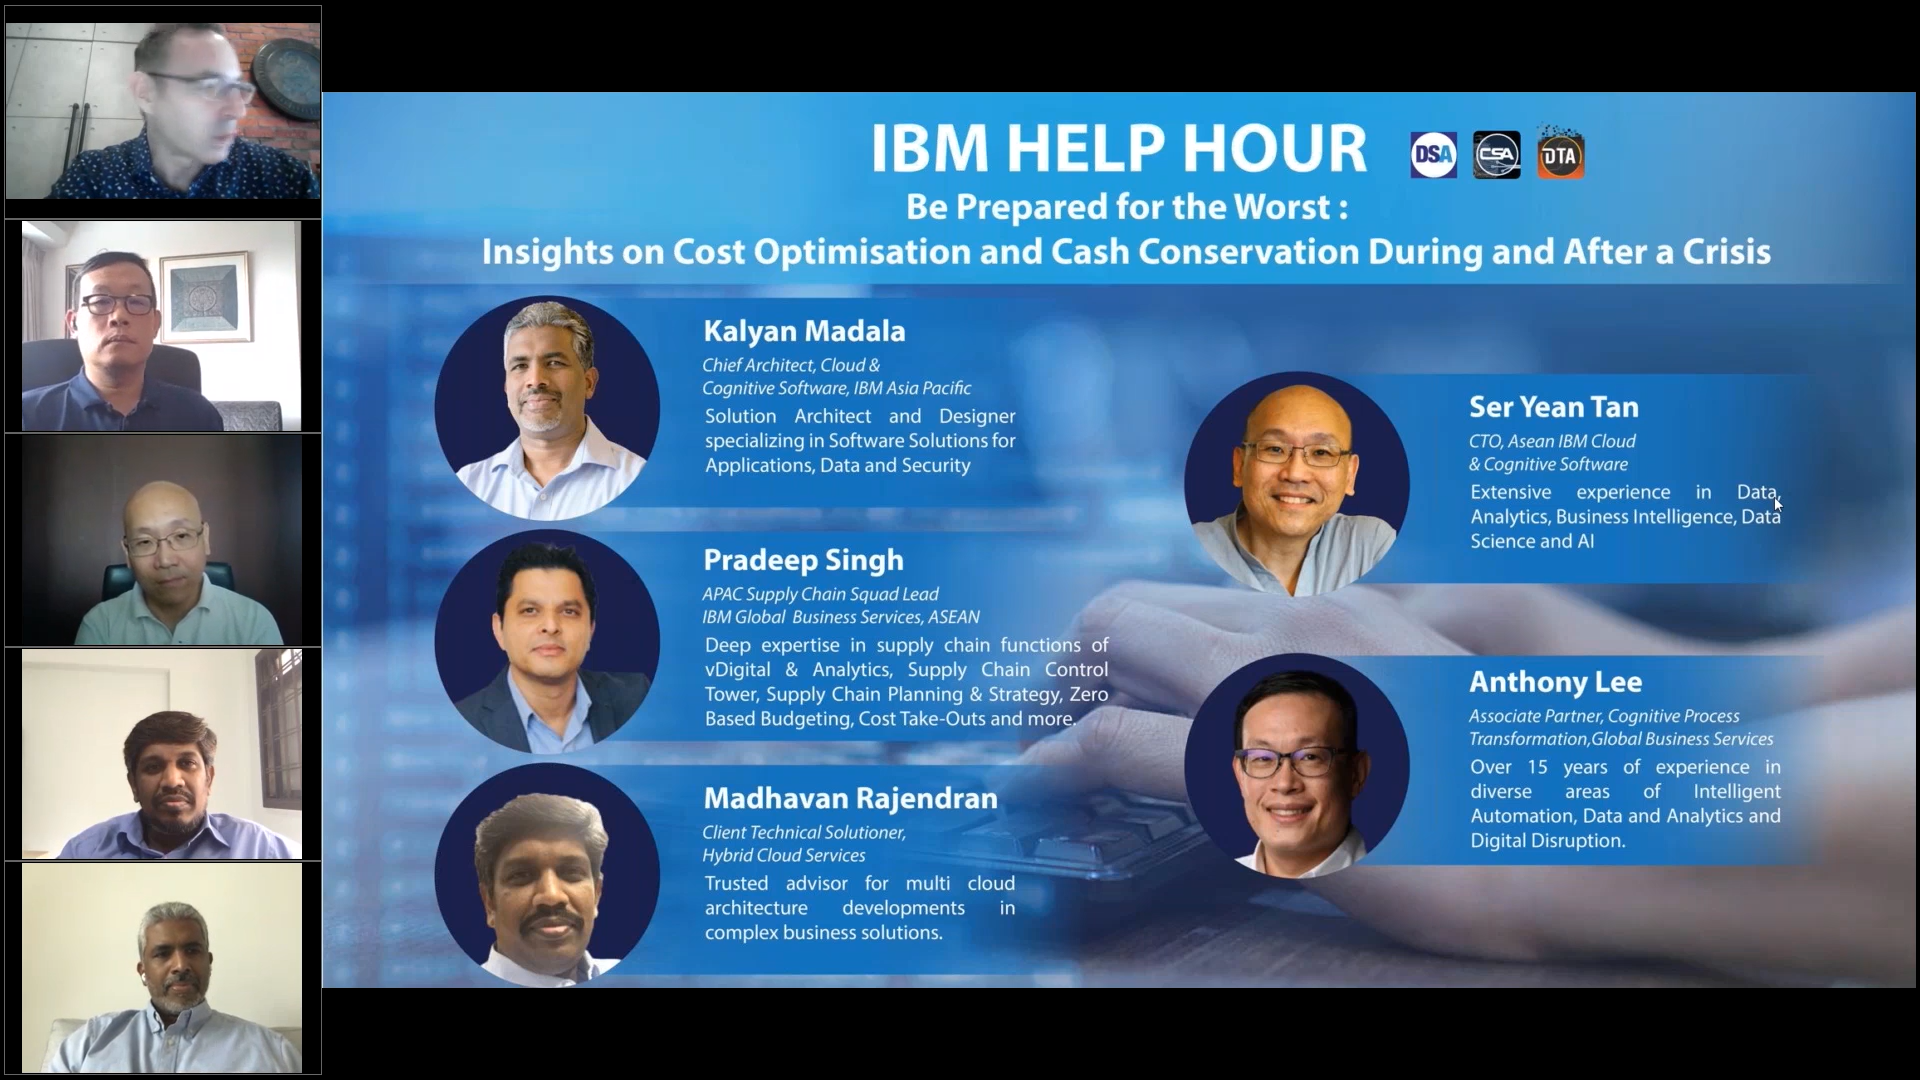 IBM Help Hour 3–Plan For The Best, Prepare for the Worst: Insights on Cost Optimisation and Cash Conservation During and After a Crisis.